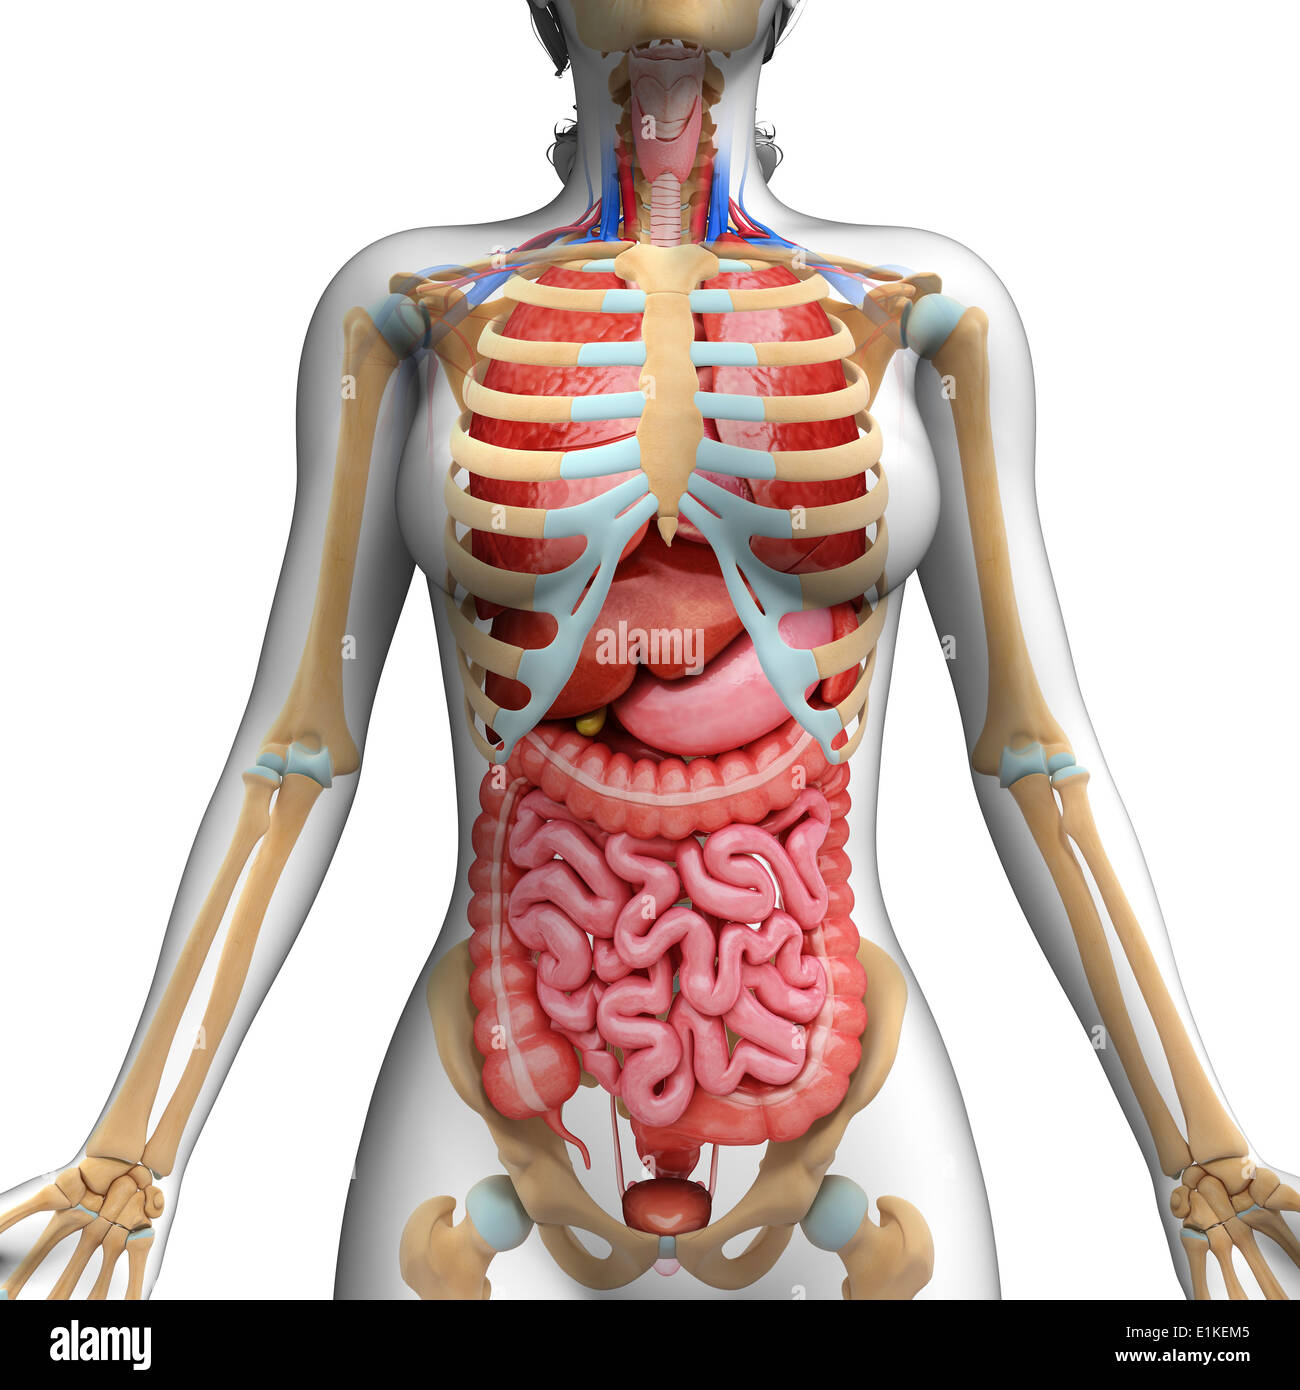 List of Synonyms and Antonyms of the Word: human rib cage organs